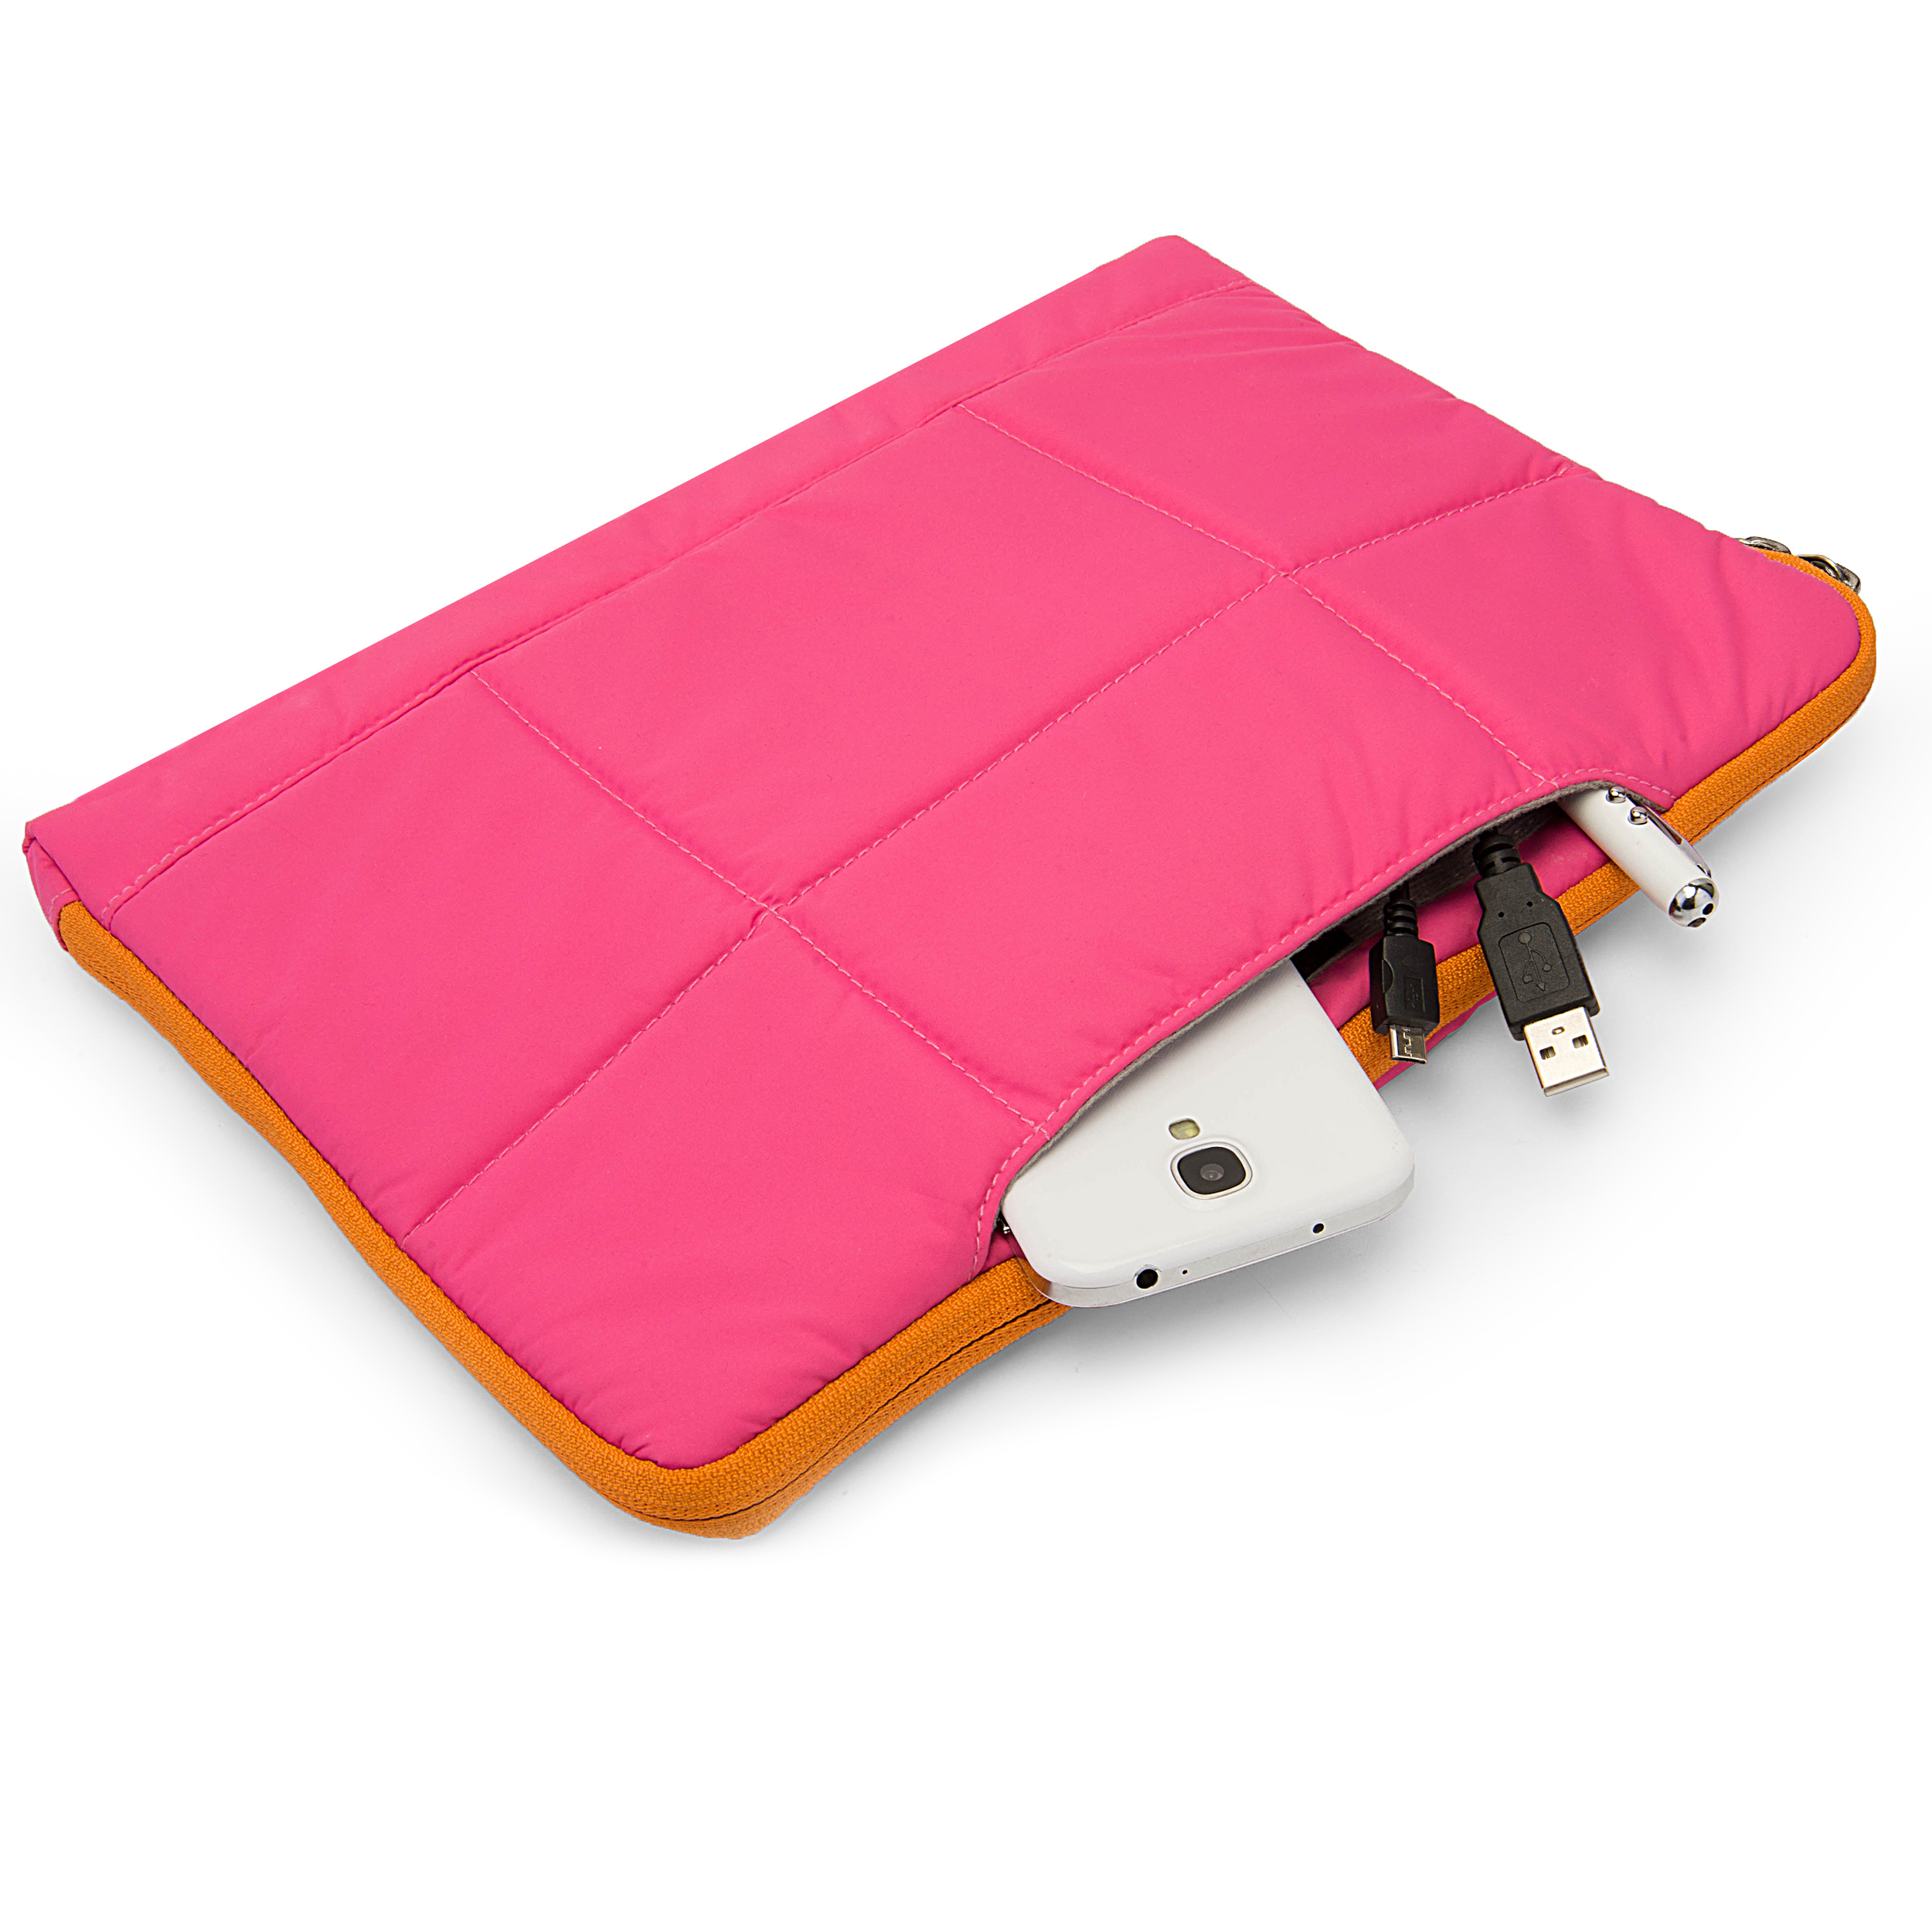 "Pillow Case 10"" (Pink/Orange)"